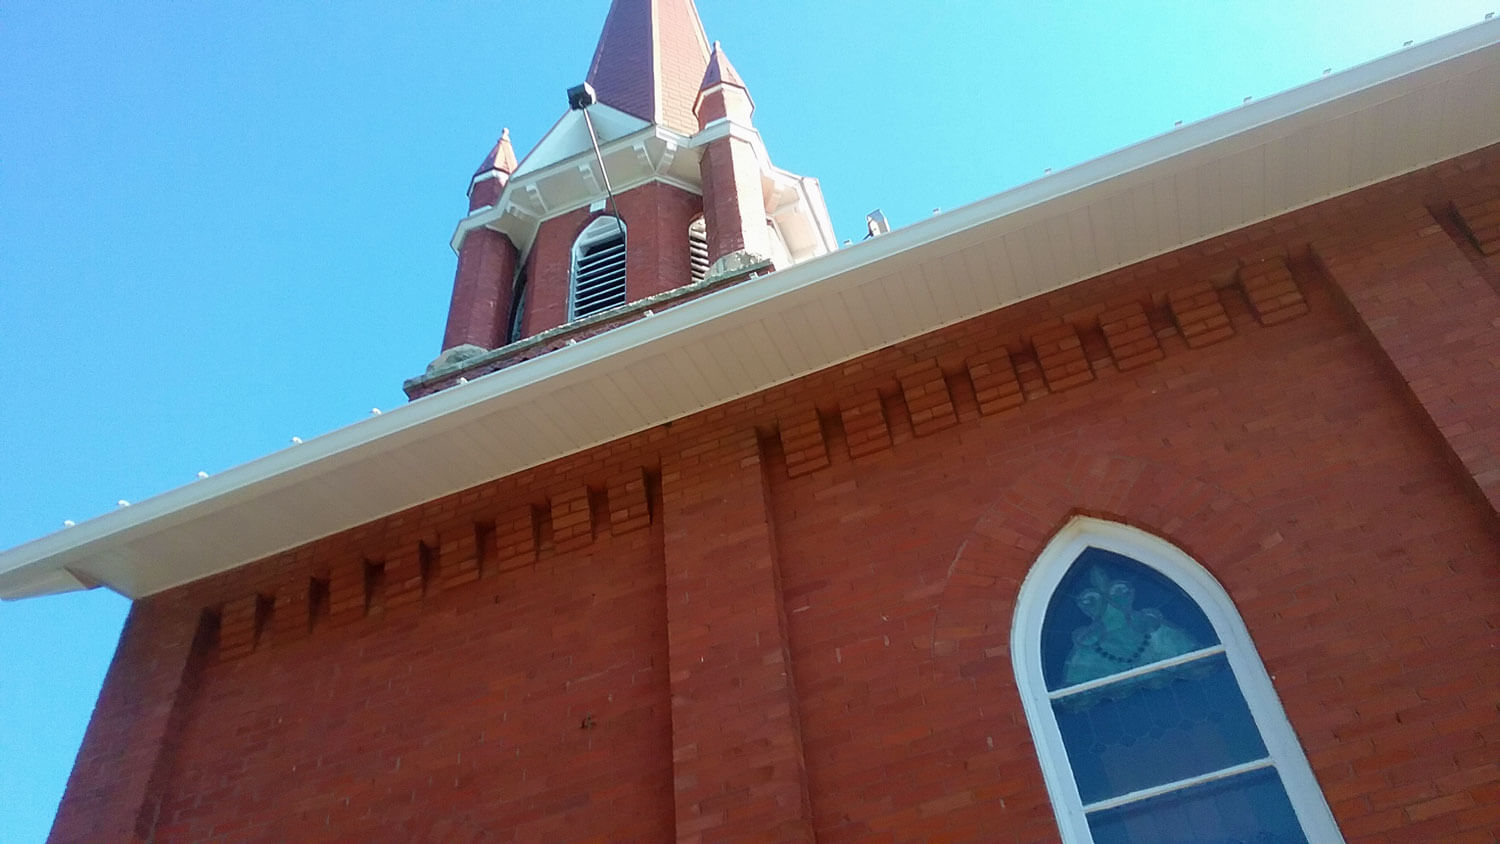 soffits on church building